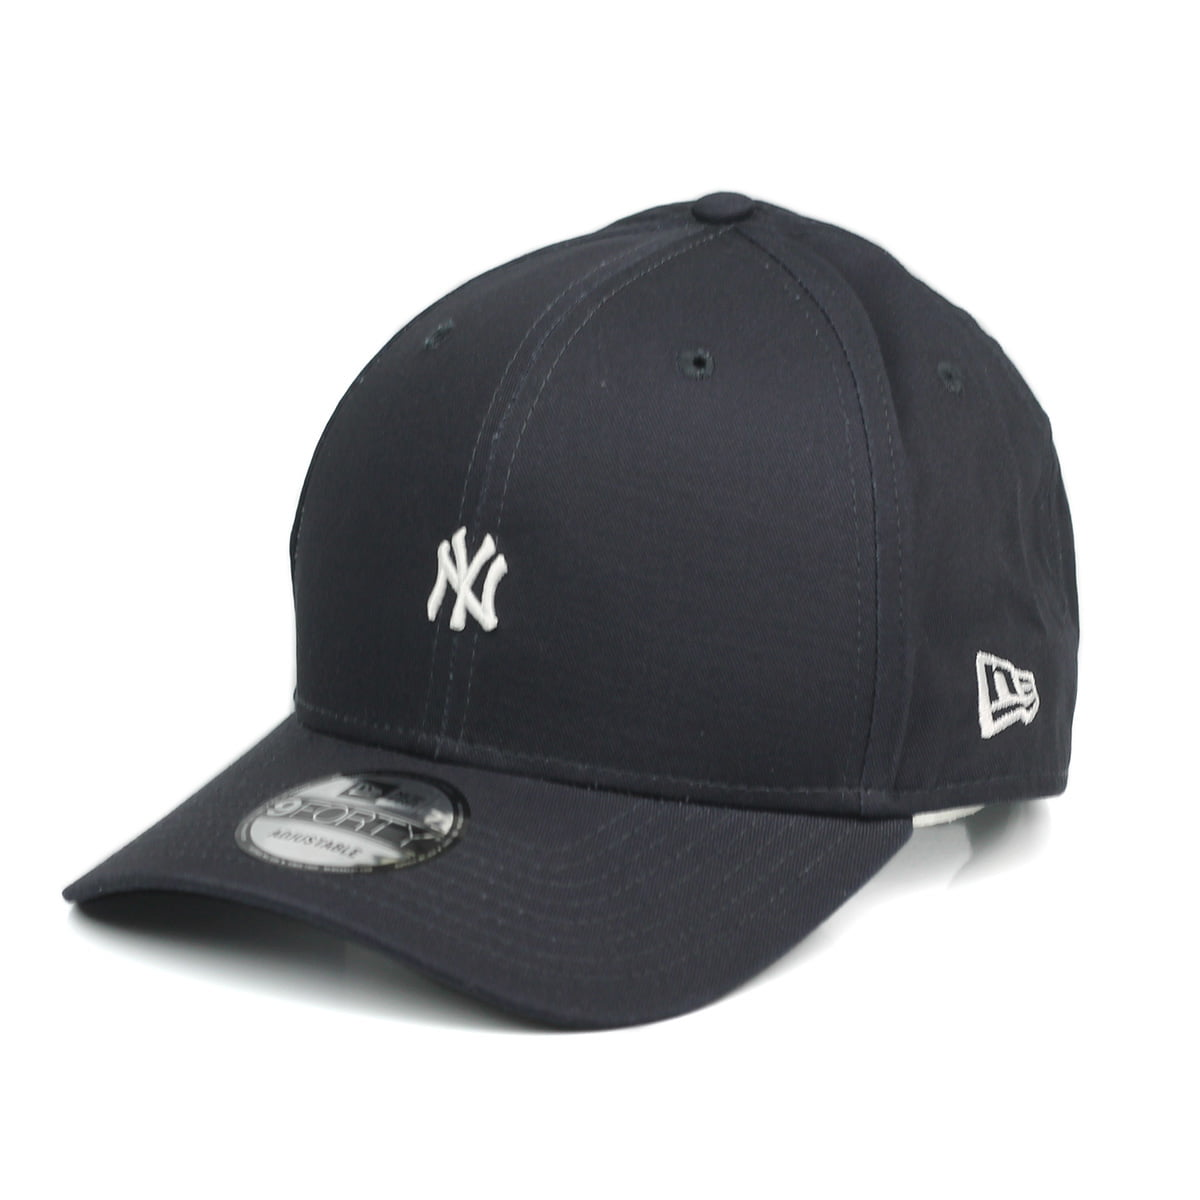 Bone New York Yankees New Era 9forty mini logo navy